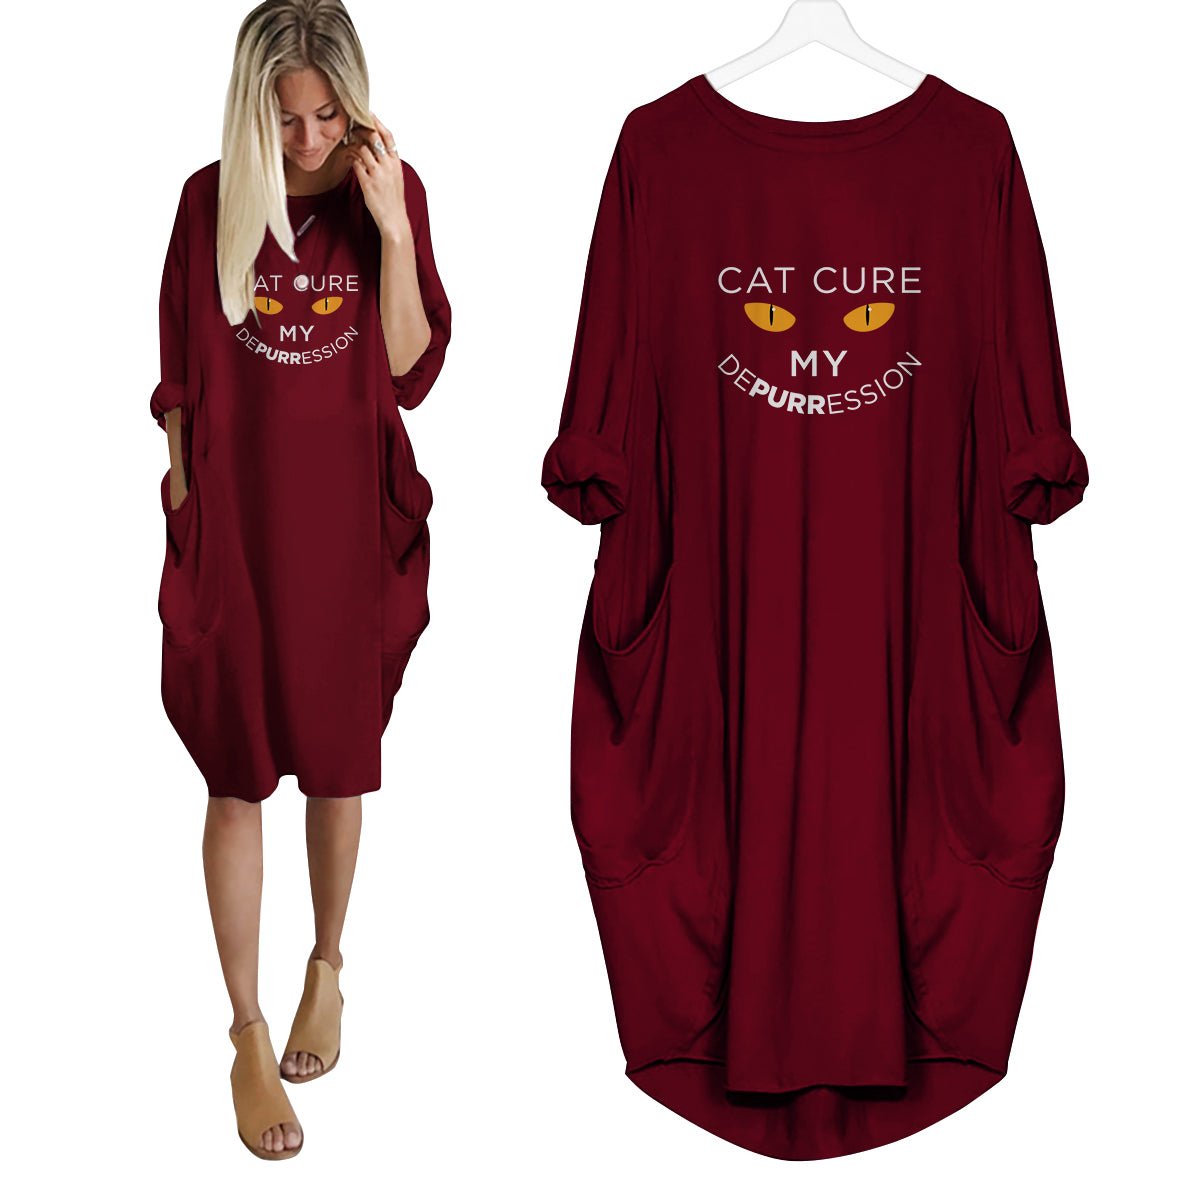 Cat Cure Dress